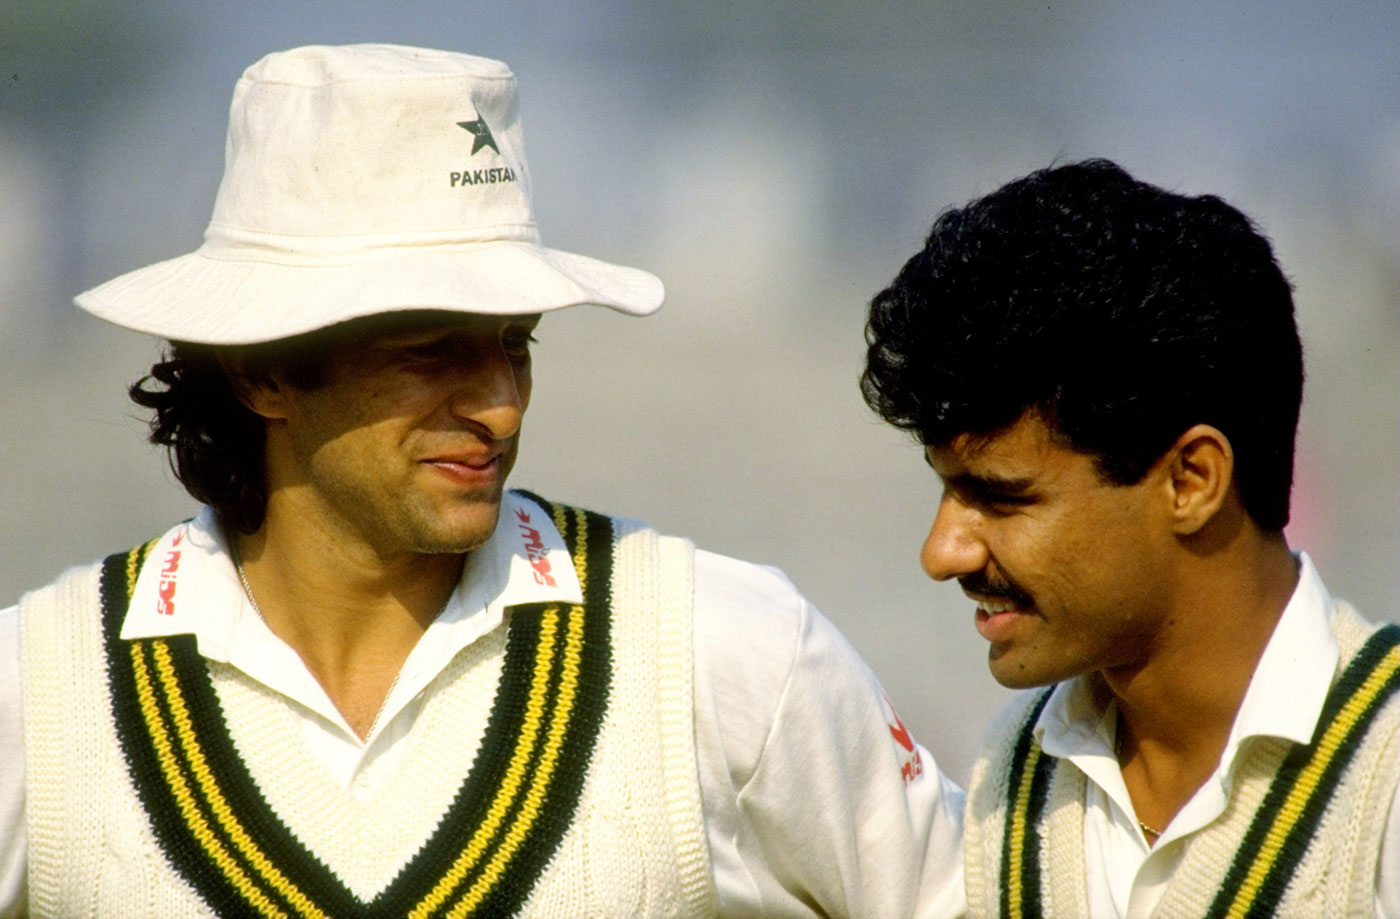 Wasim and Waqar: the bane of opening batsmen everywhere